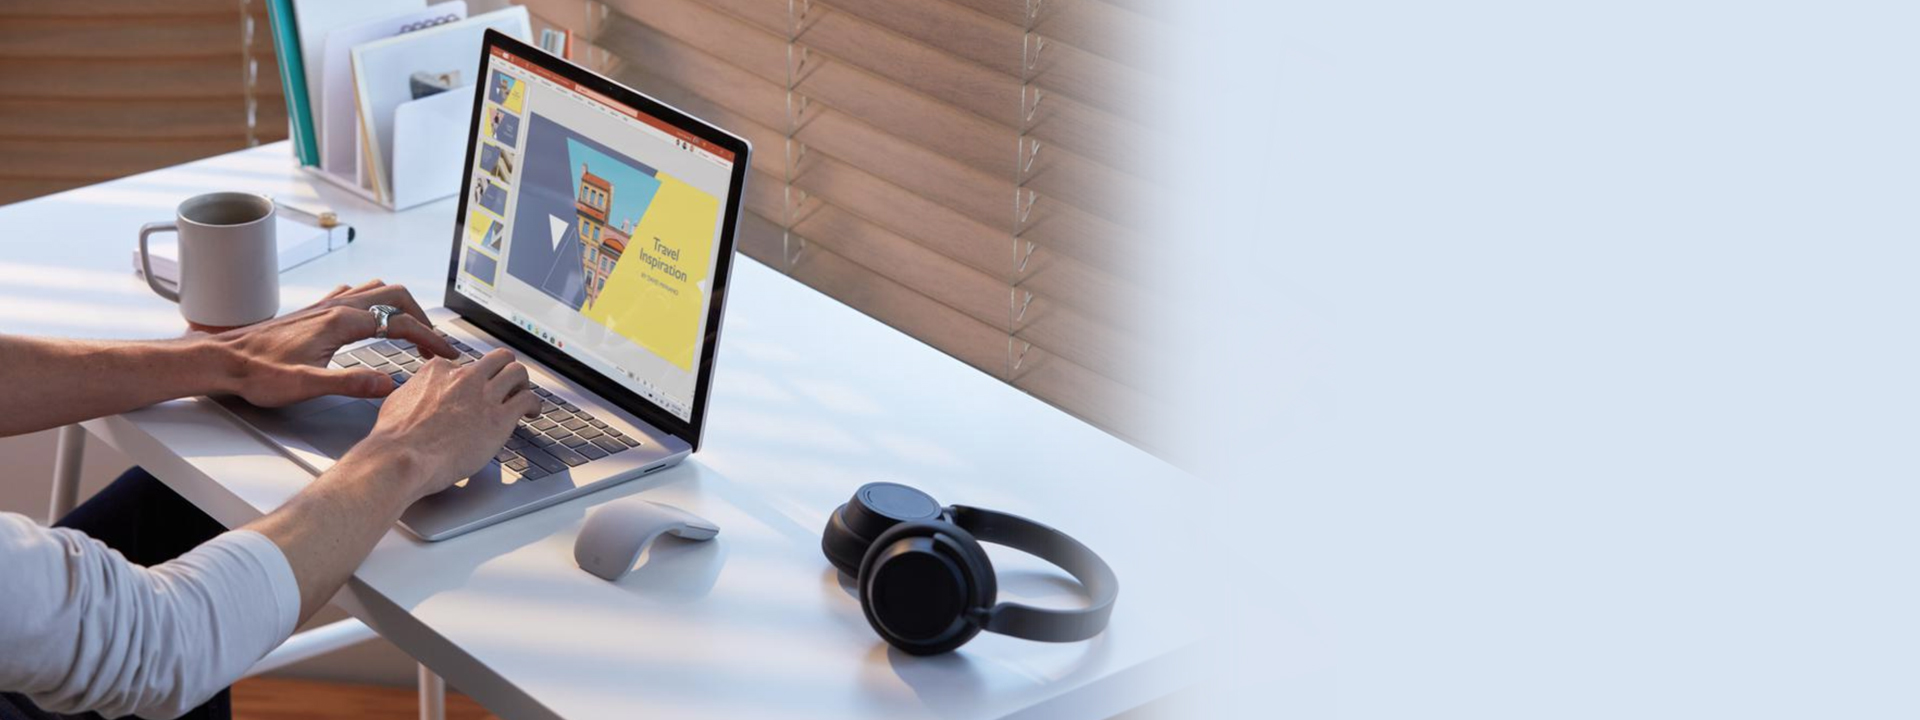 Surface Laptop 3 and Surface Headphones on a table